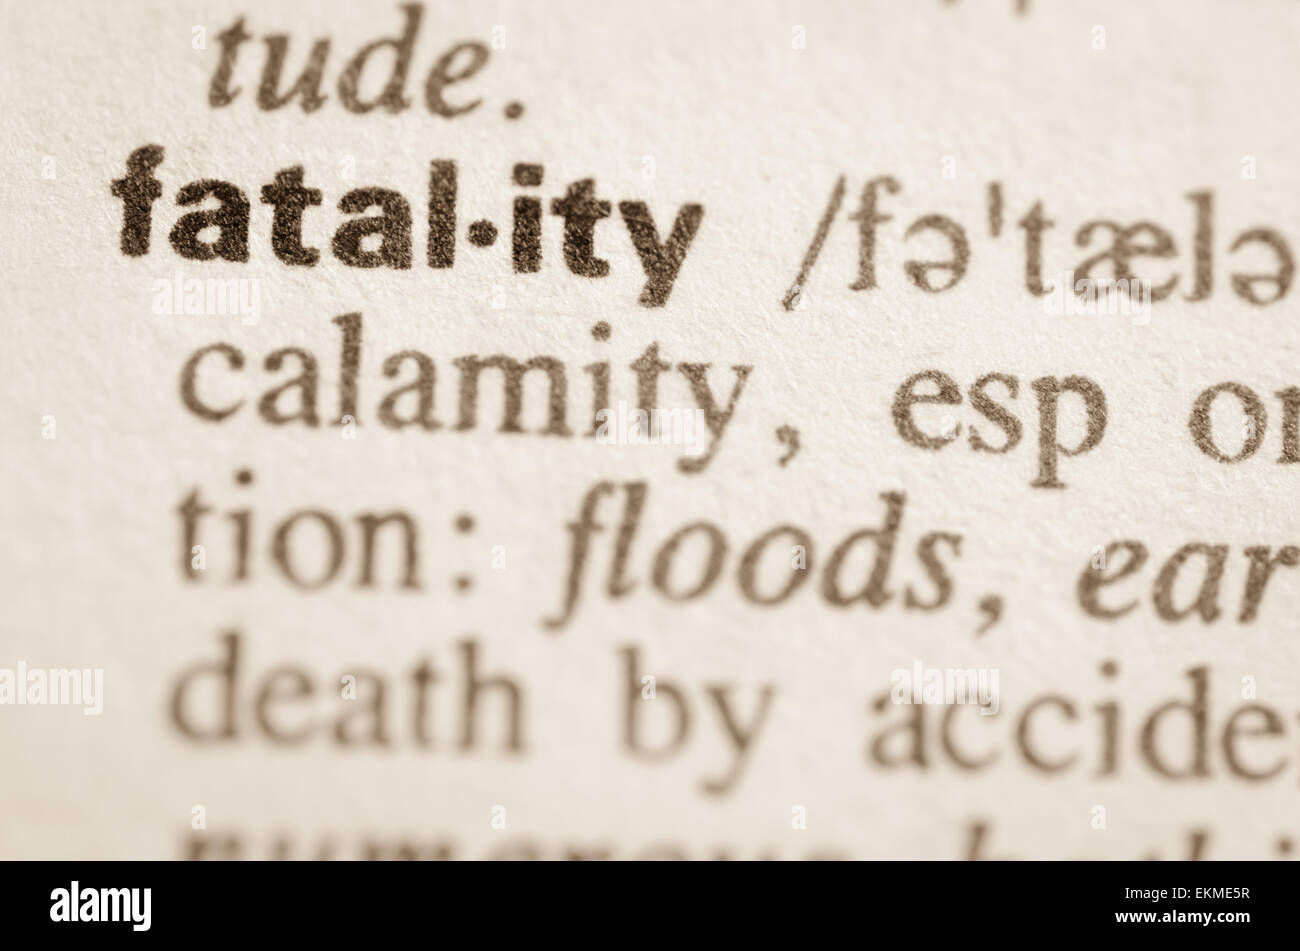 Definition of word fatality  in dictionary - Stock Image